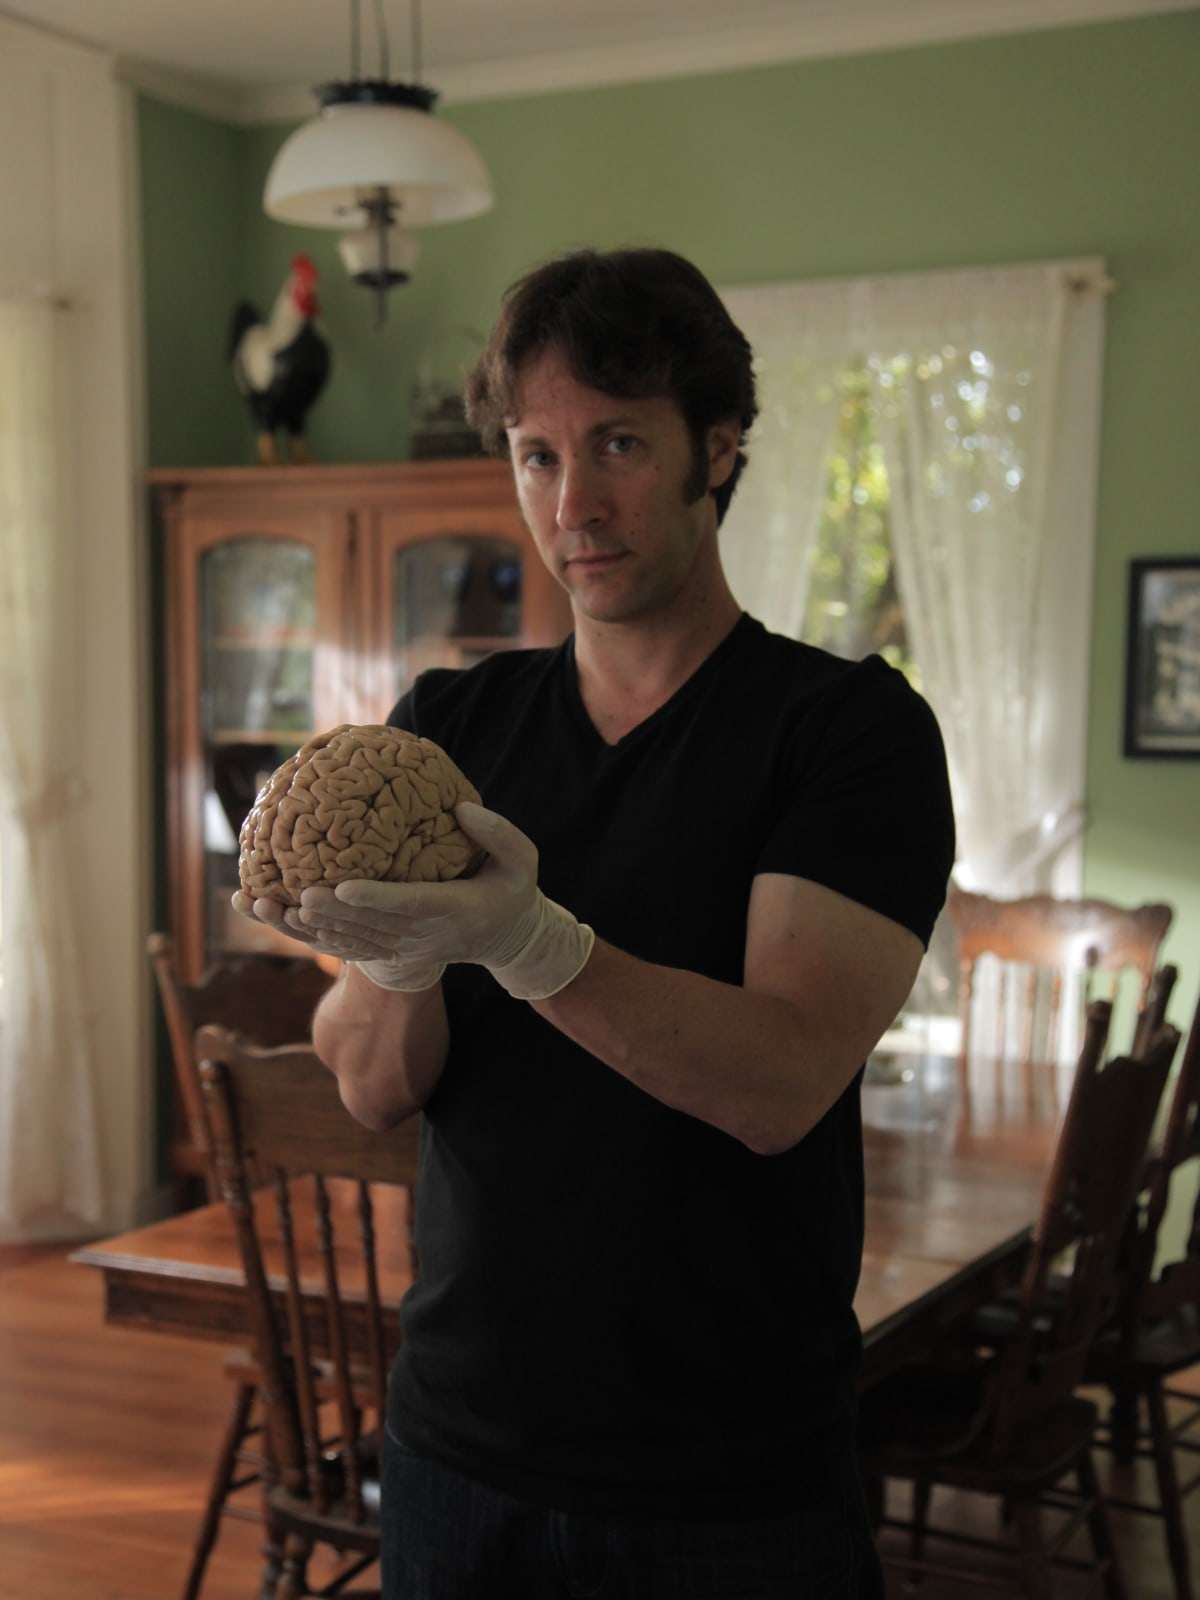 David Eagleman holding a human brain, donated to The M.I.N.D. Institute, University of California at Davis Medical Center for science research